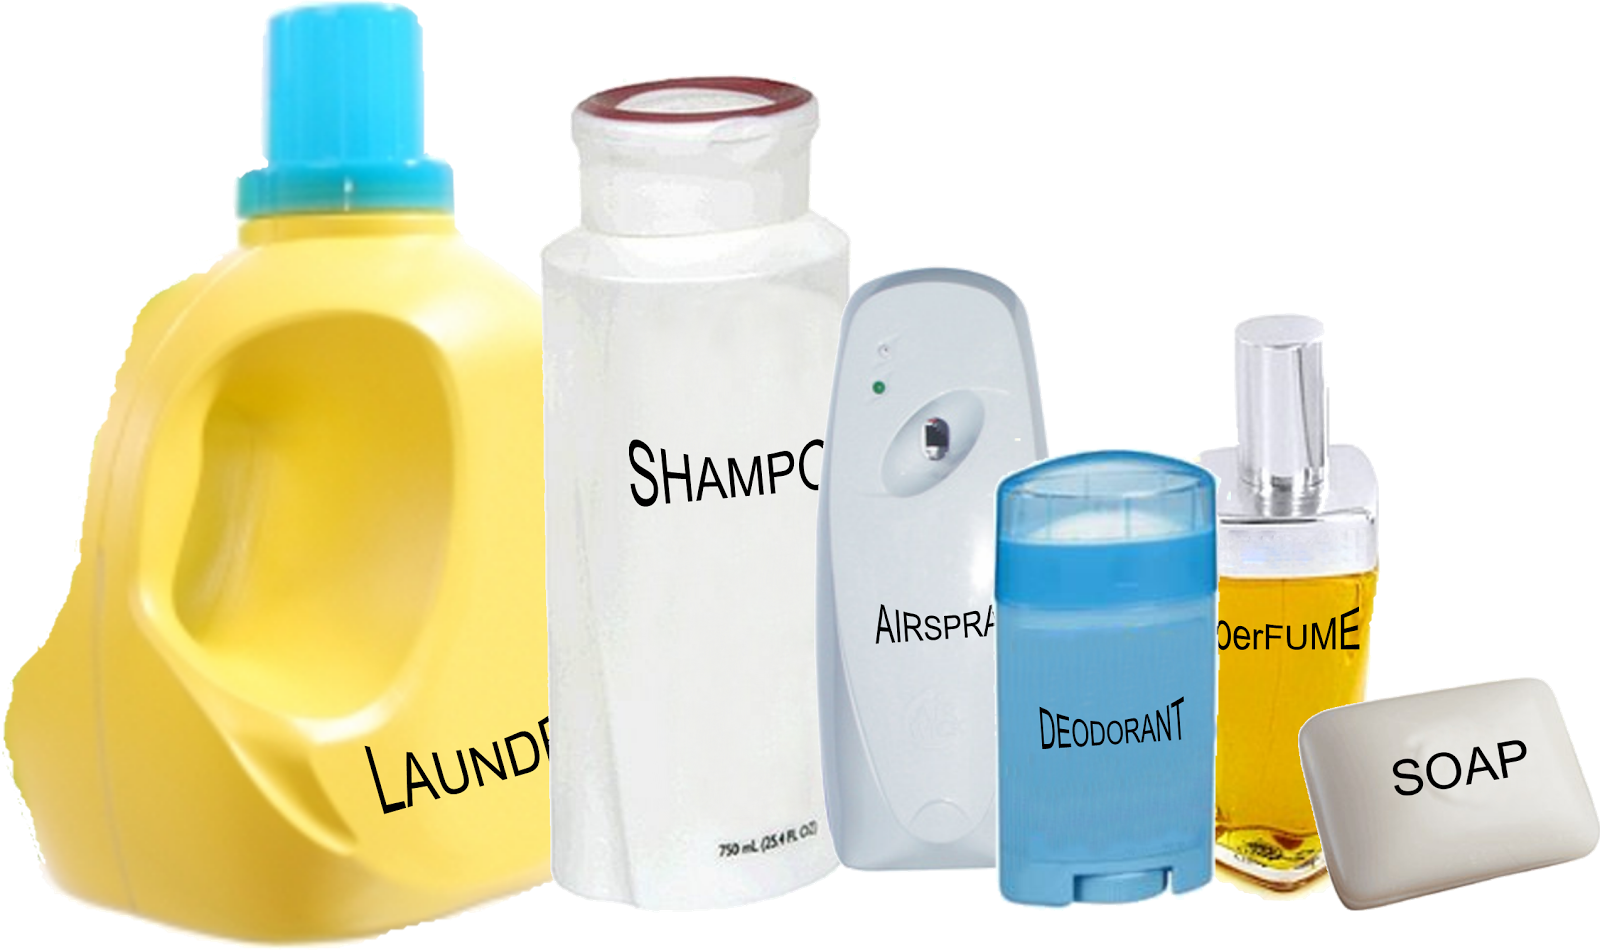 Hazards Of Cosmetics And Personal Care Products